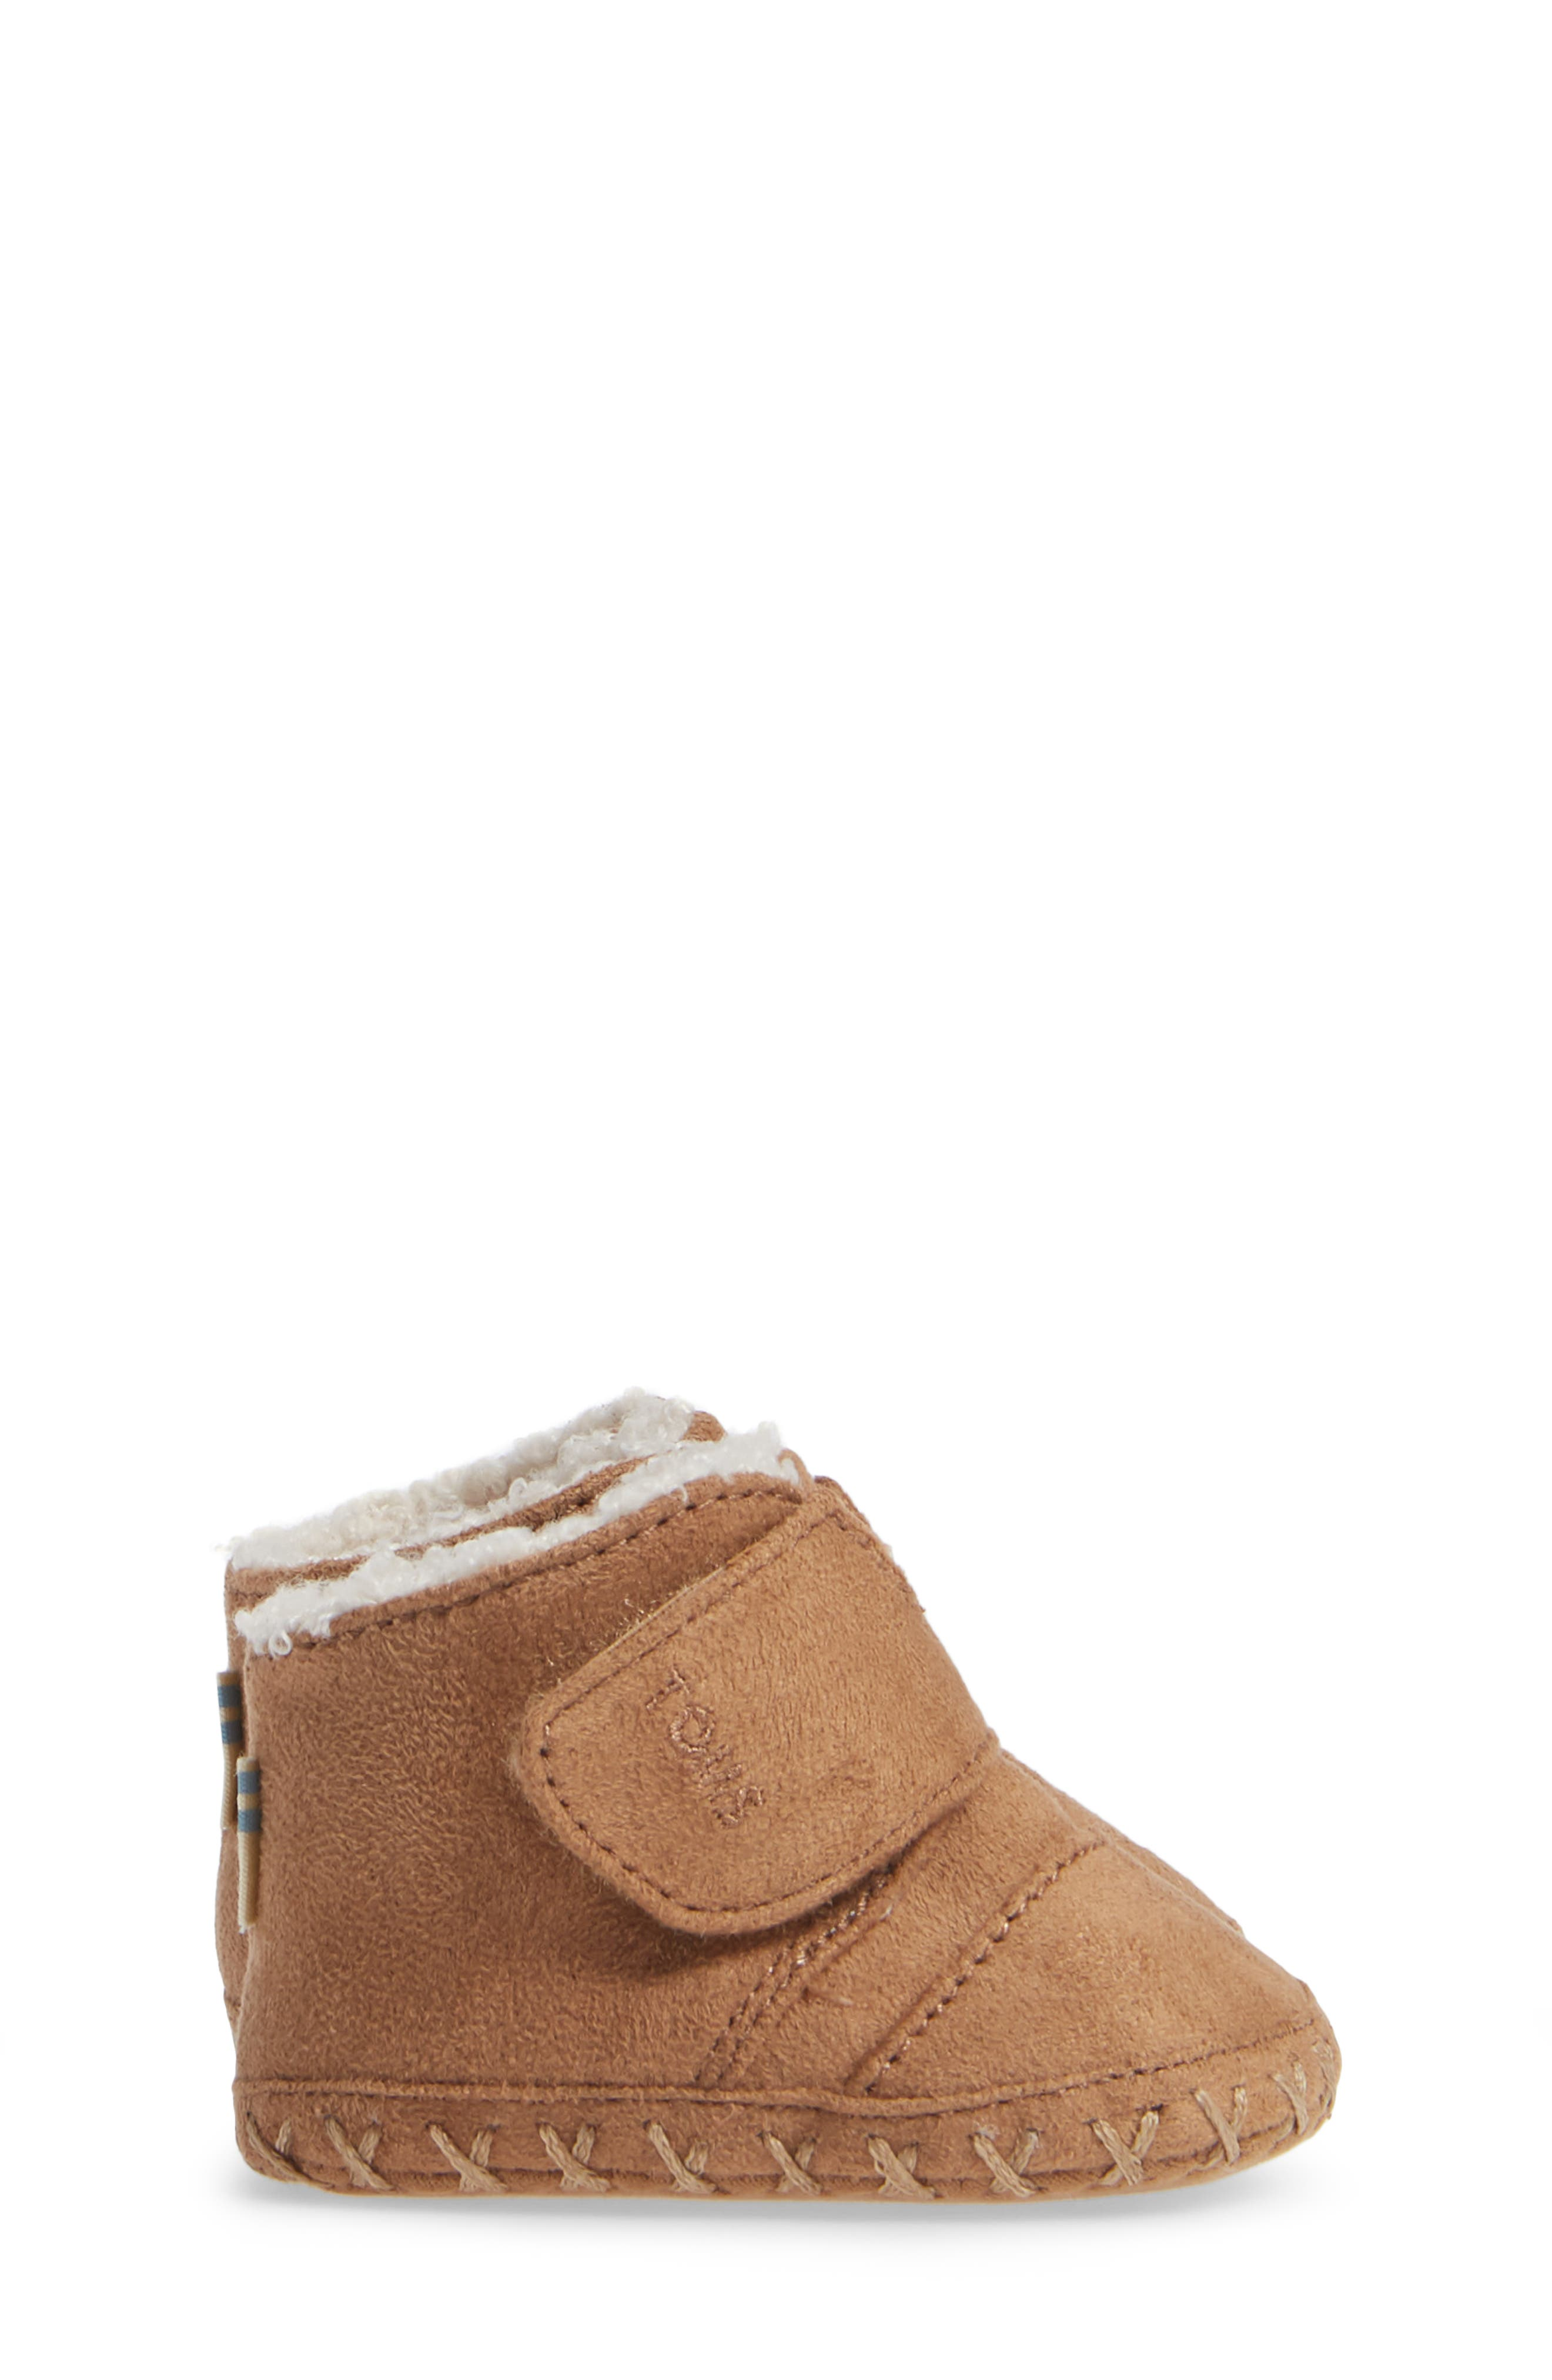 Tiny Cuna Faux Fur Crib Bootie,                             Alternate thumbnail 4, color,                             TOFFEE MICROFIBER